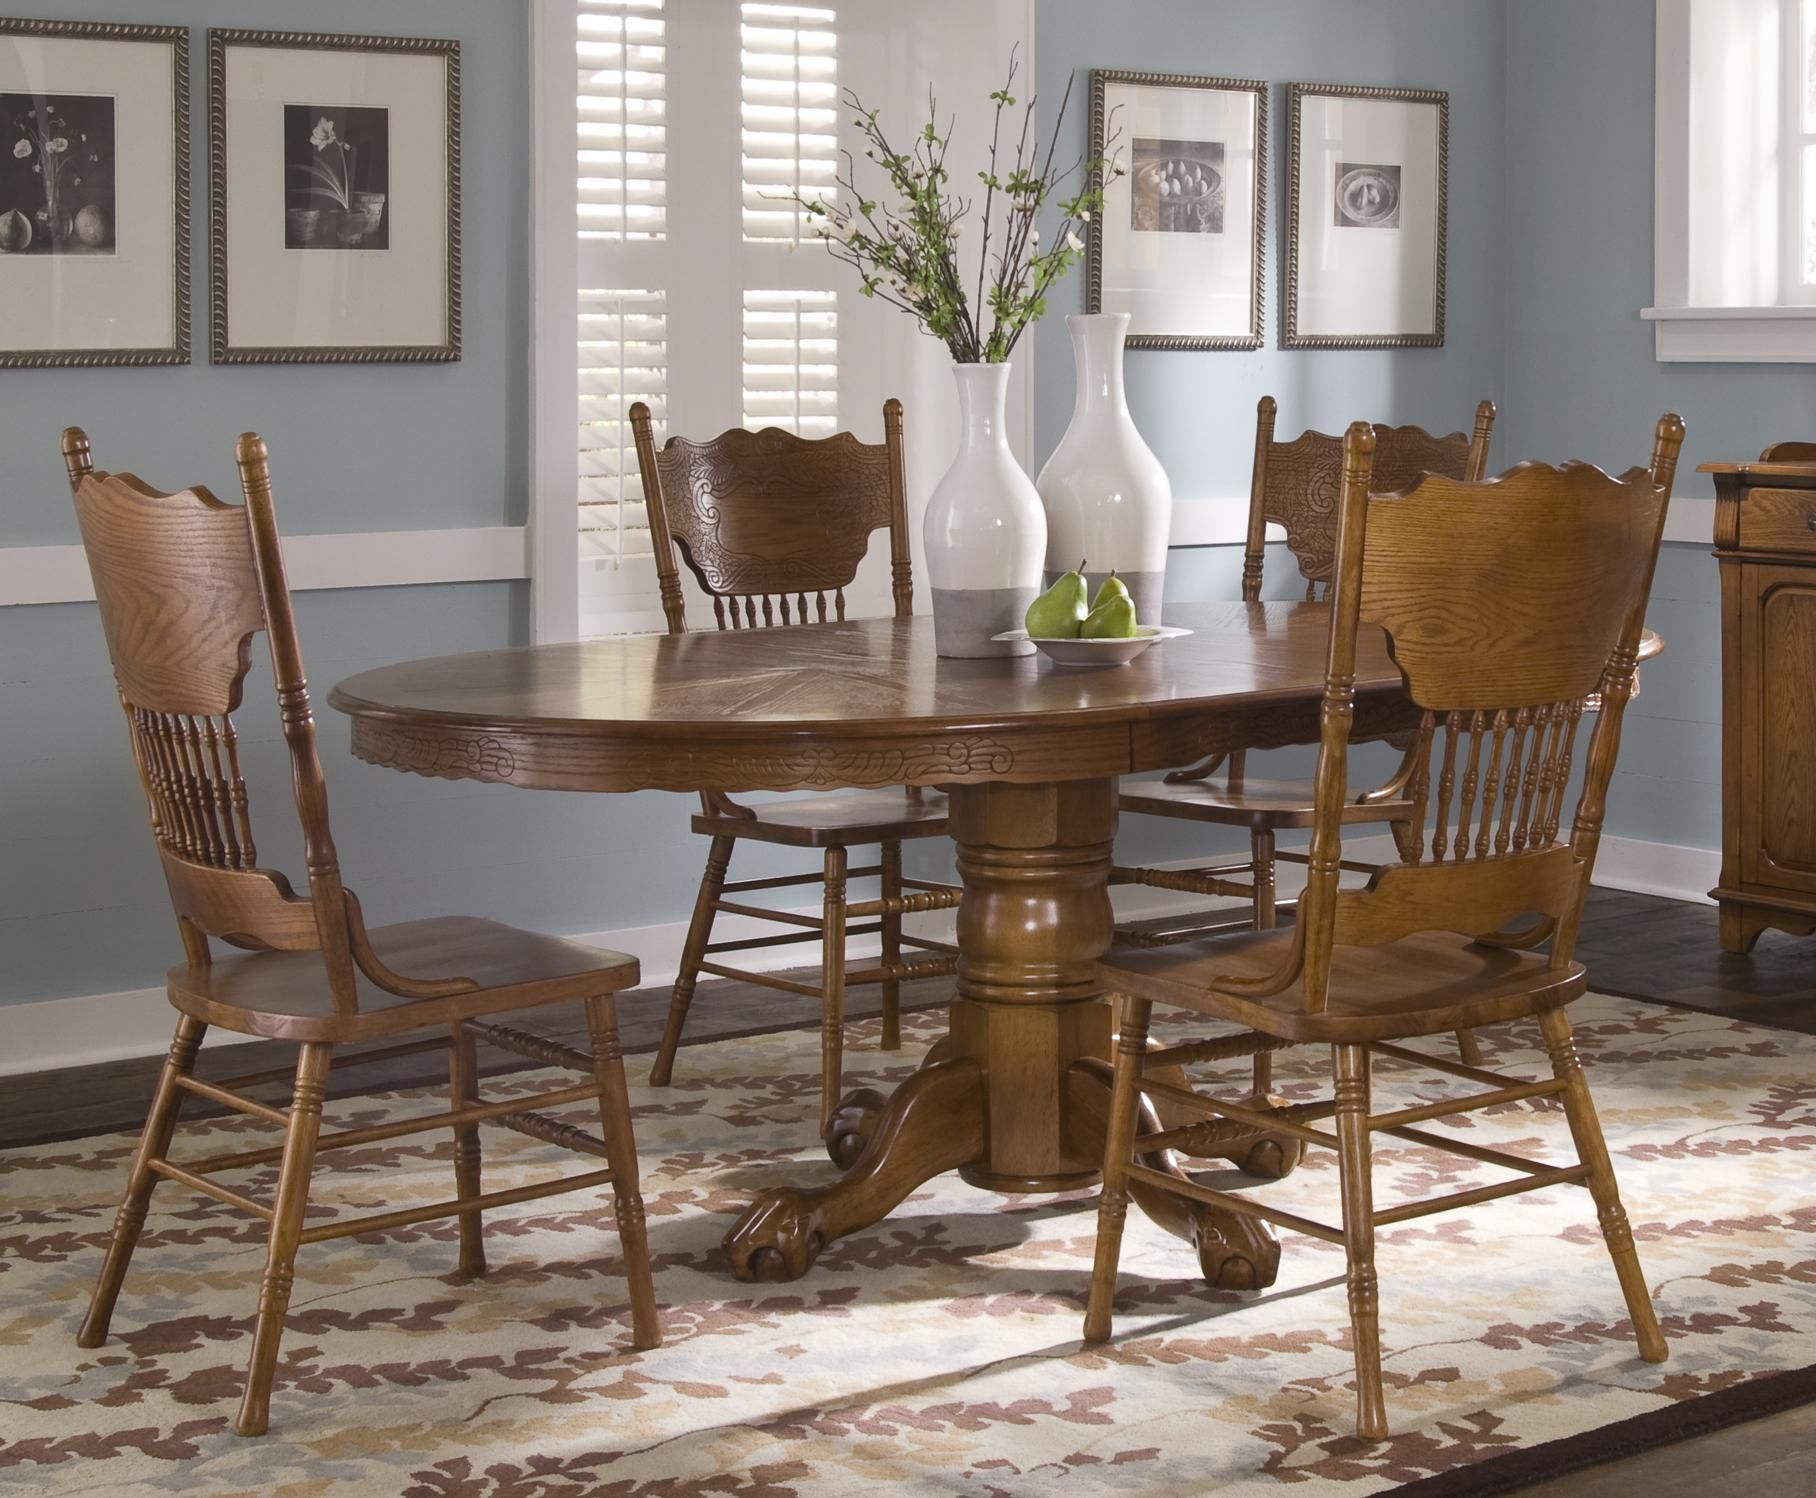 Nostalgia single pedestal table and side chair set by liberty